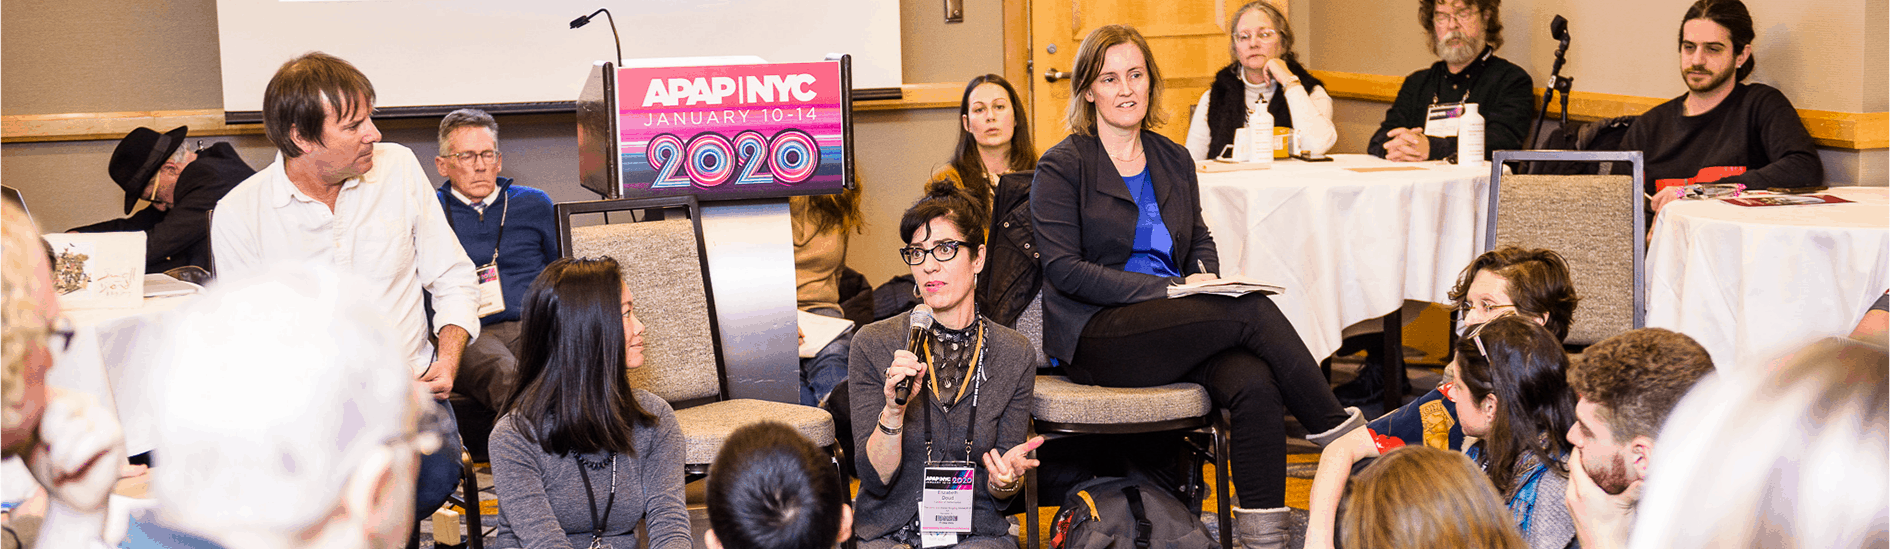 APAPNYC 2020 Agents and Managers Affinity Group by Adam Kissick/APAP